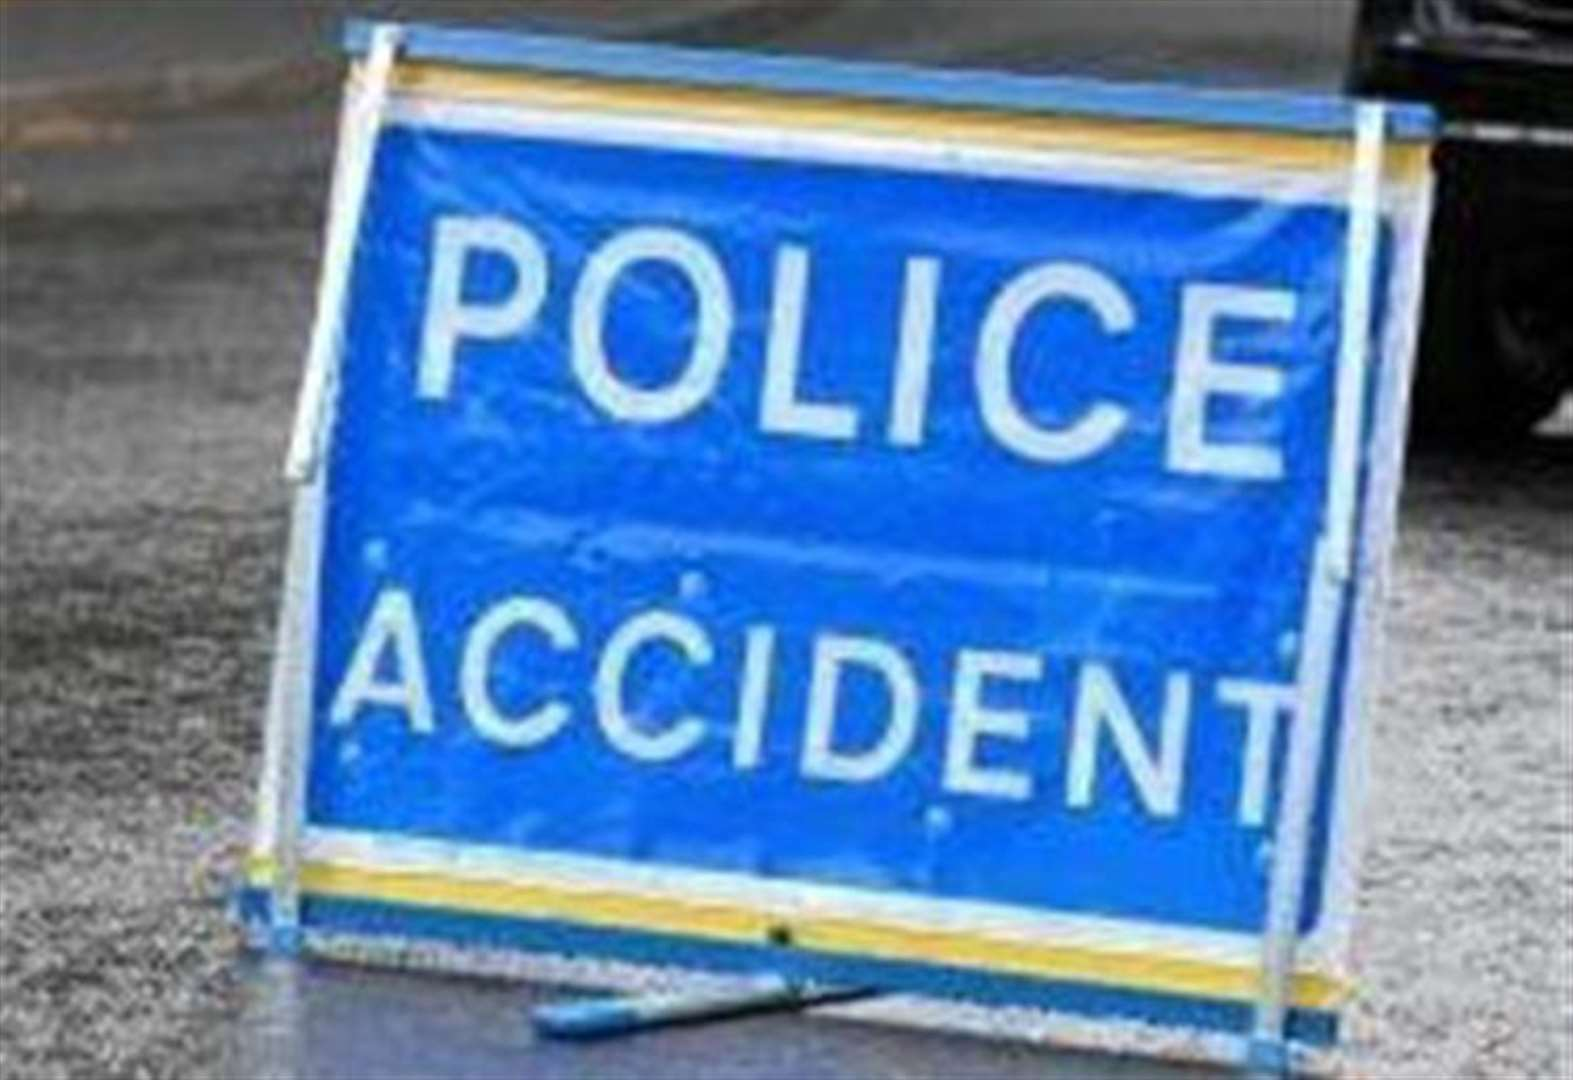 UPDATE: Accident on A1 at Wansford results in long delays